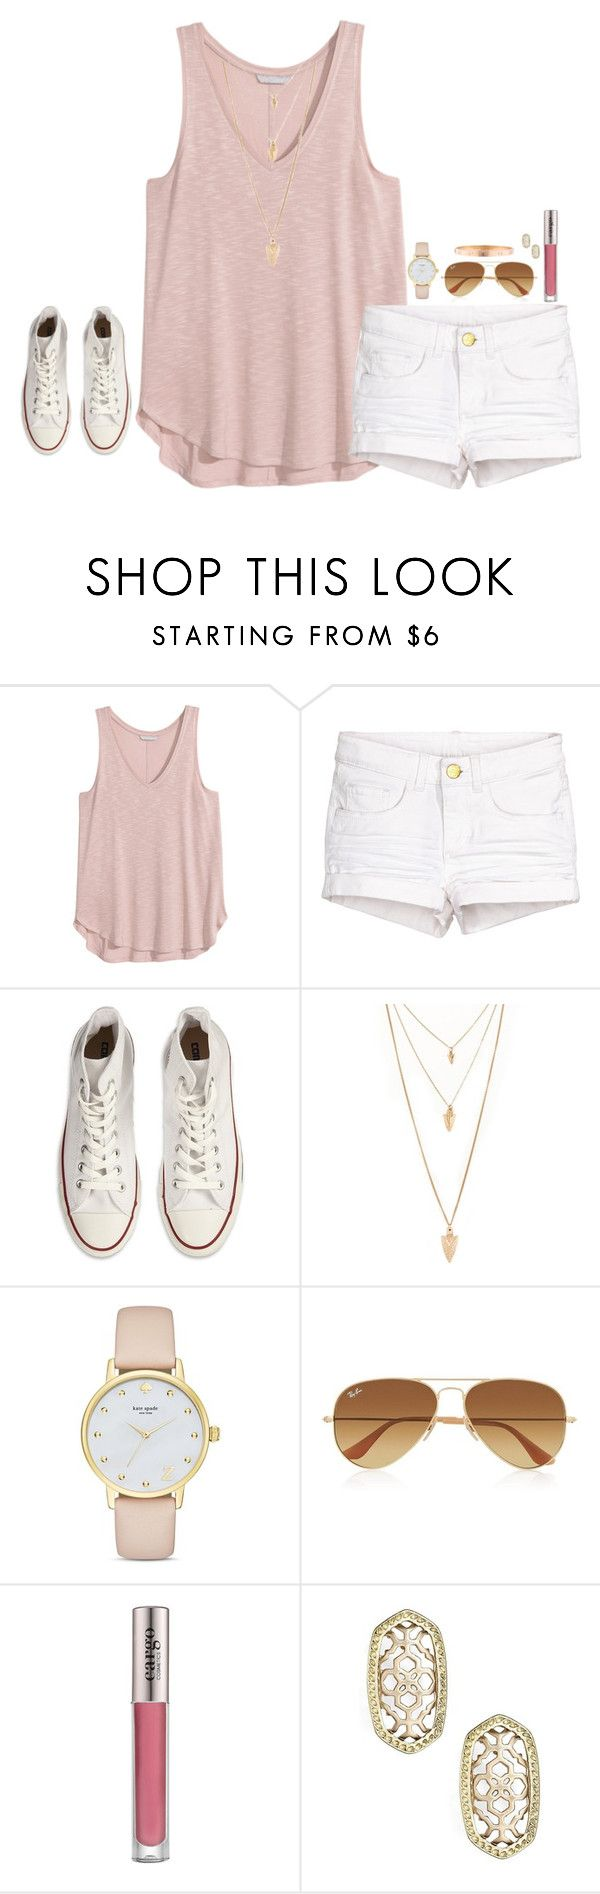 """""""Untitled #458"""" by jazmintorres1 ❤ liked on Polyvore featuring Converse, Forever 21, Kate Spade, Ray-Ban, CARGO, Kendra Scott and Cartier"""